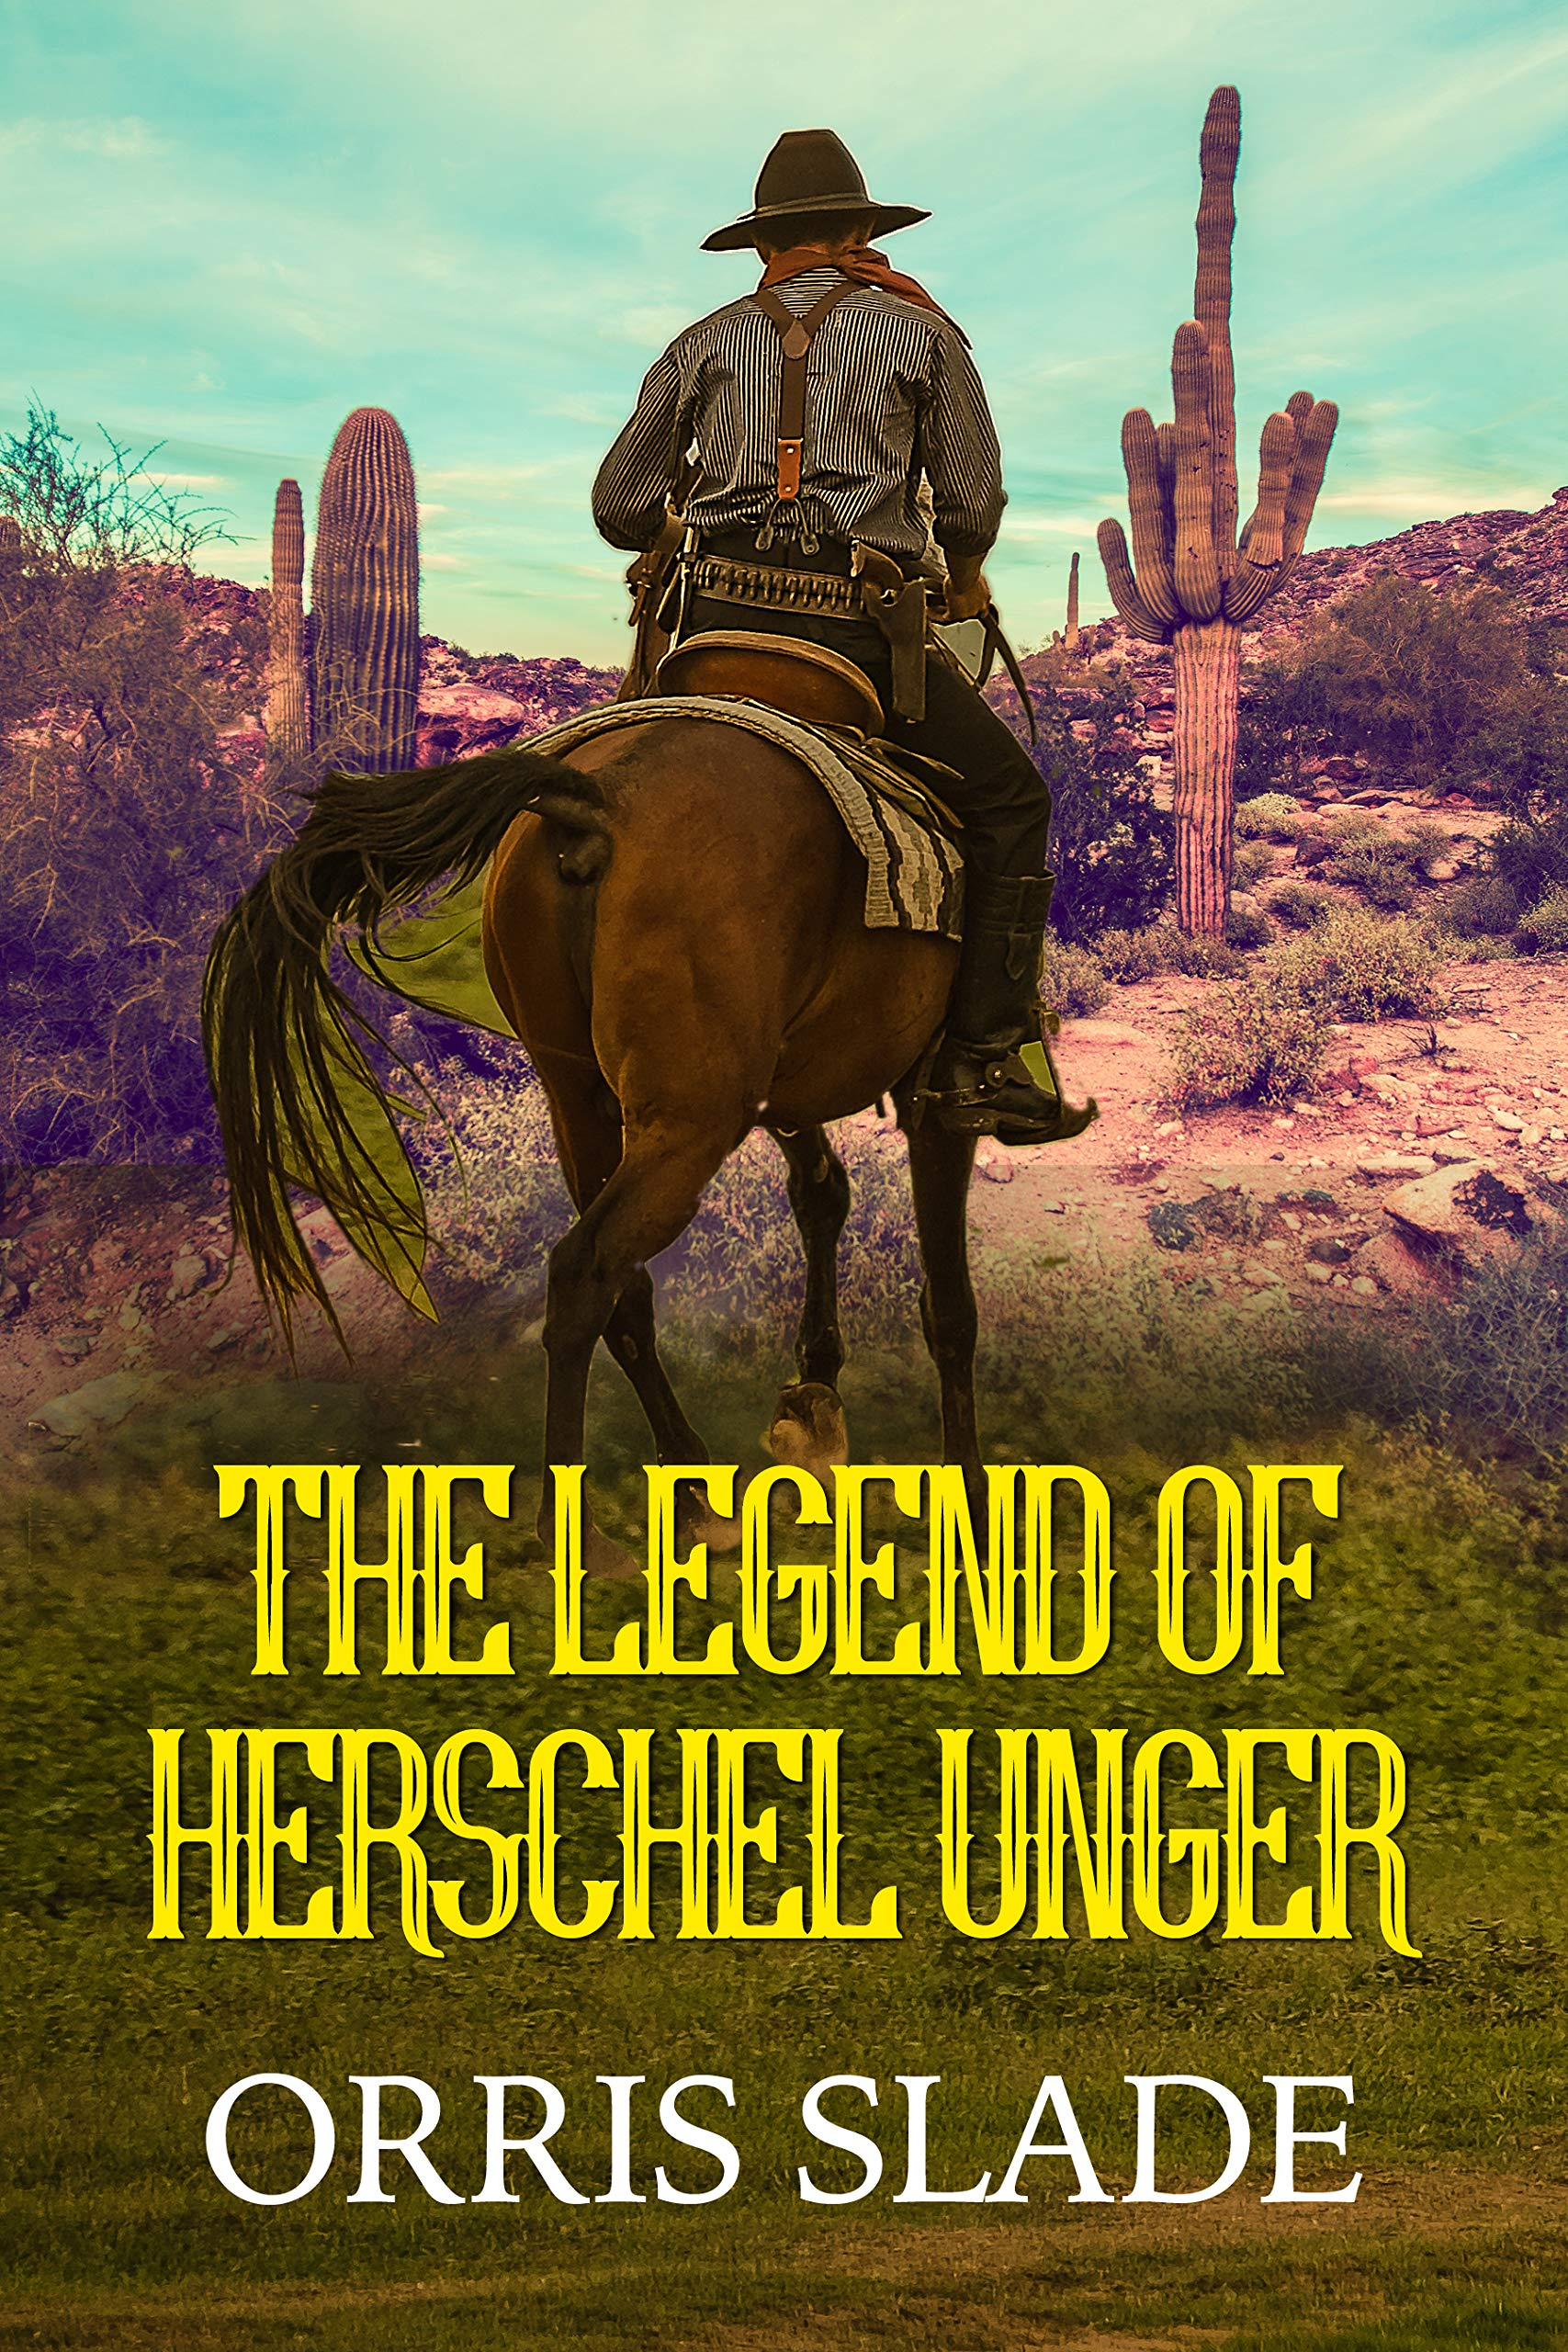 The Legend of Herschel Unger